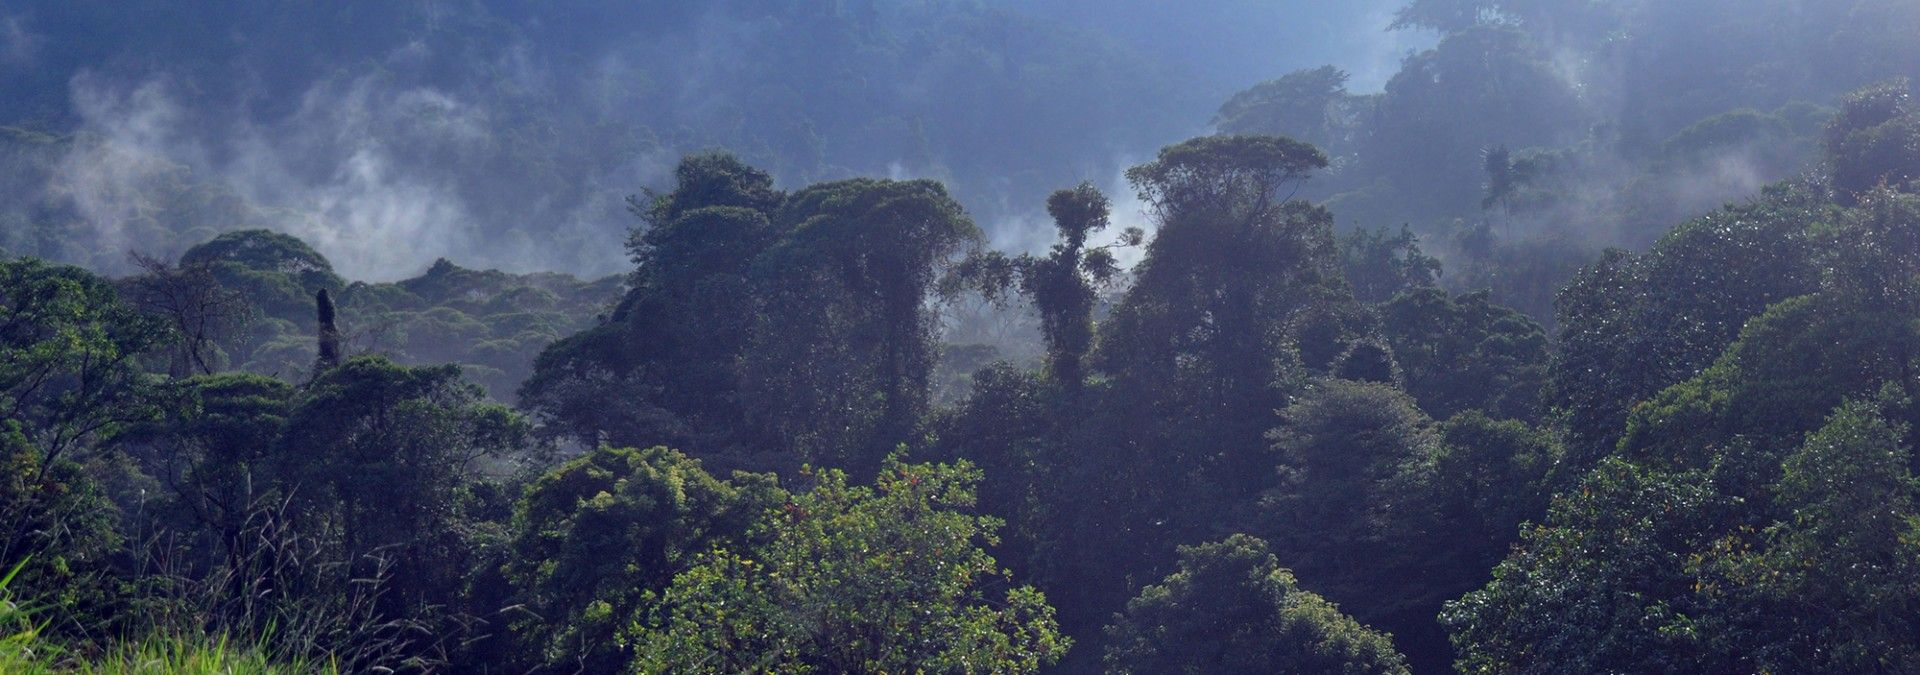 Costa_Rican_Rainforest_under_cloud.jpg